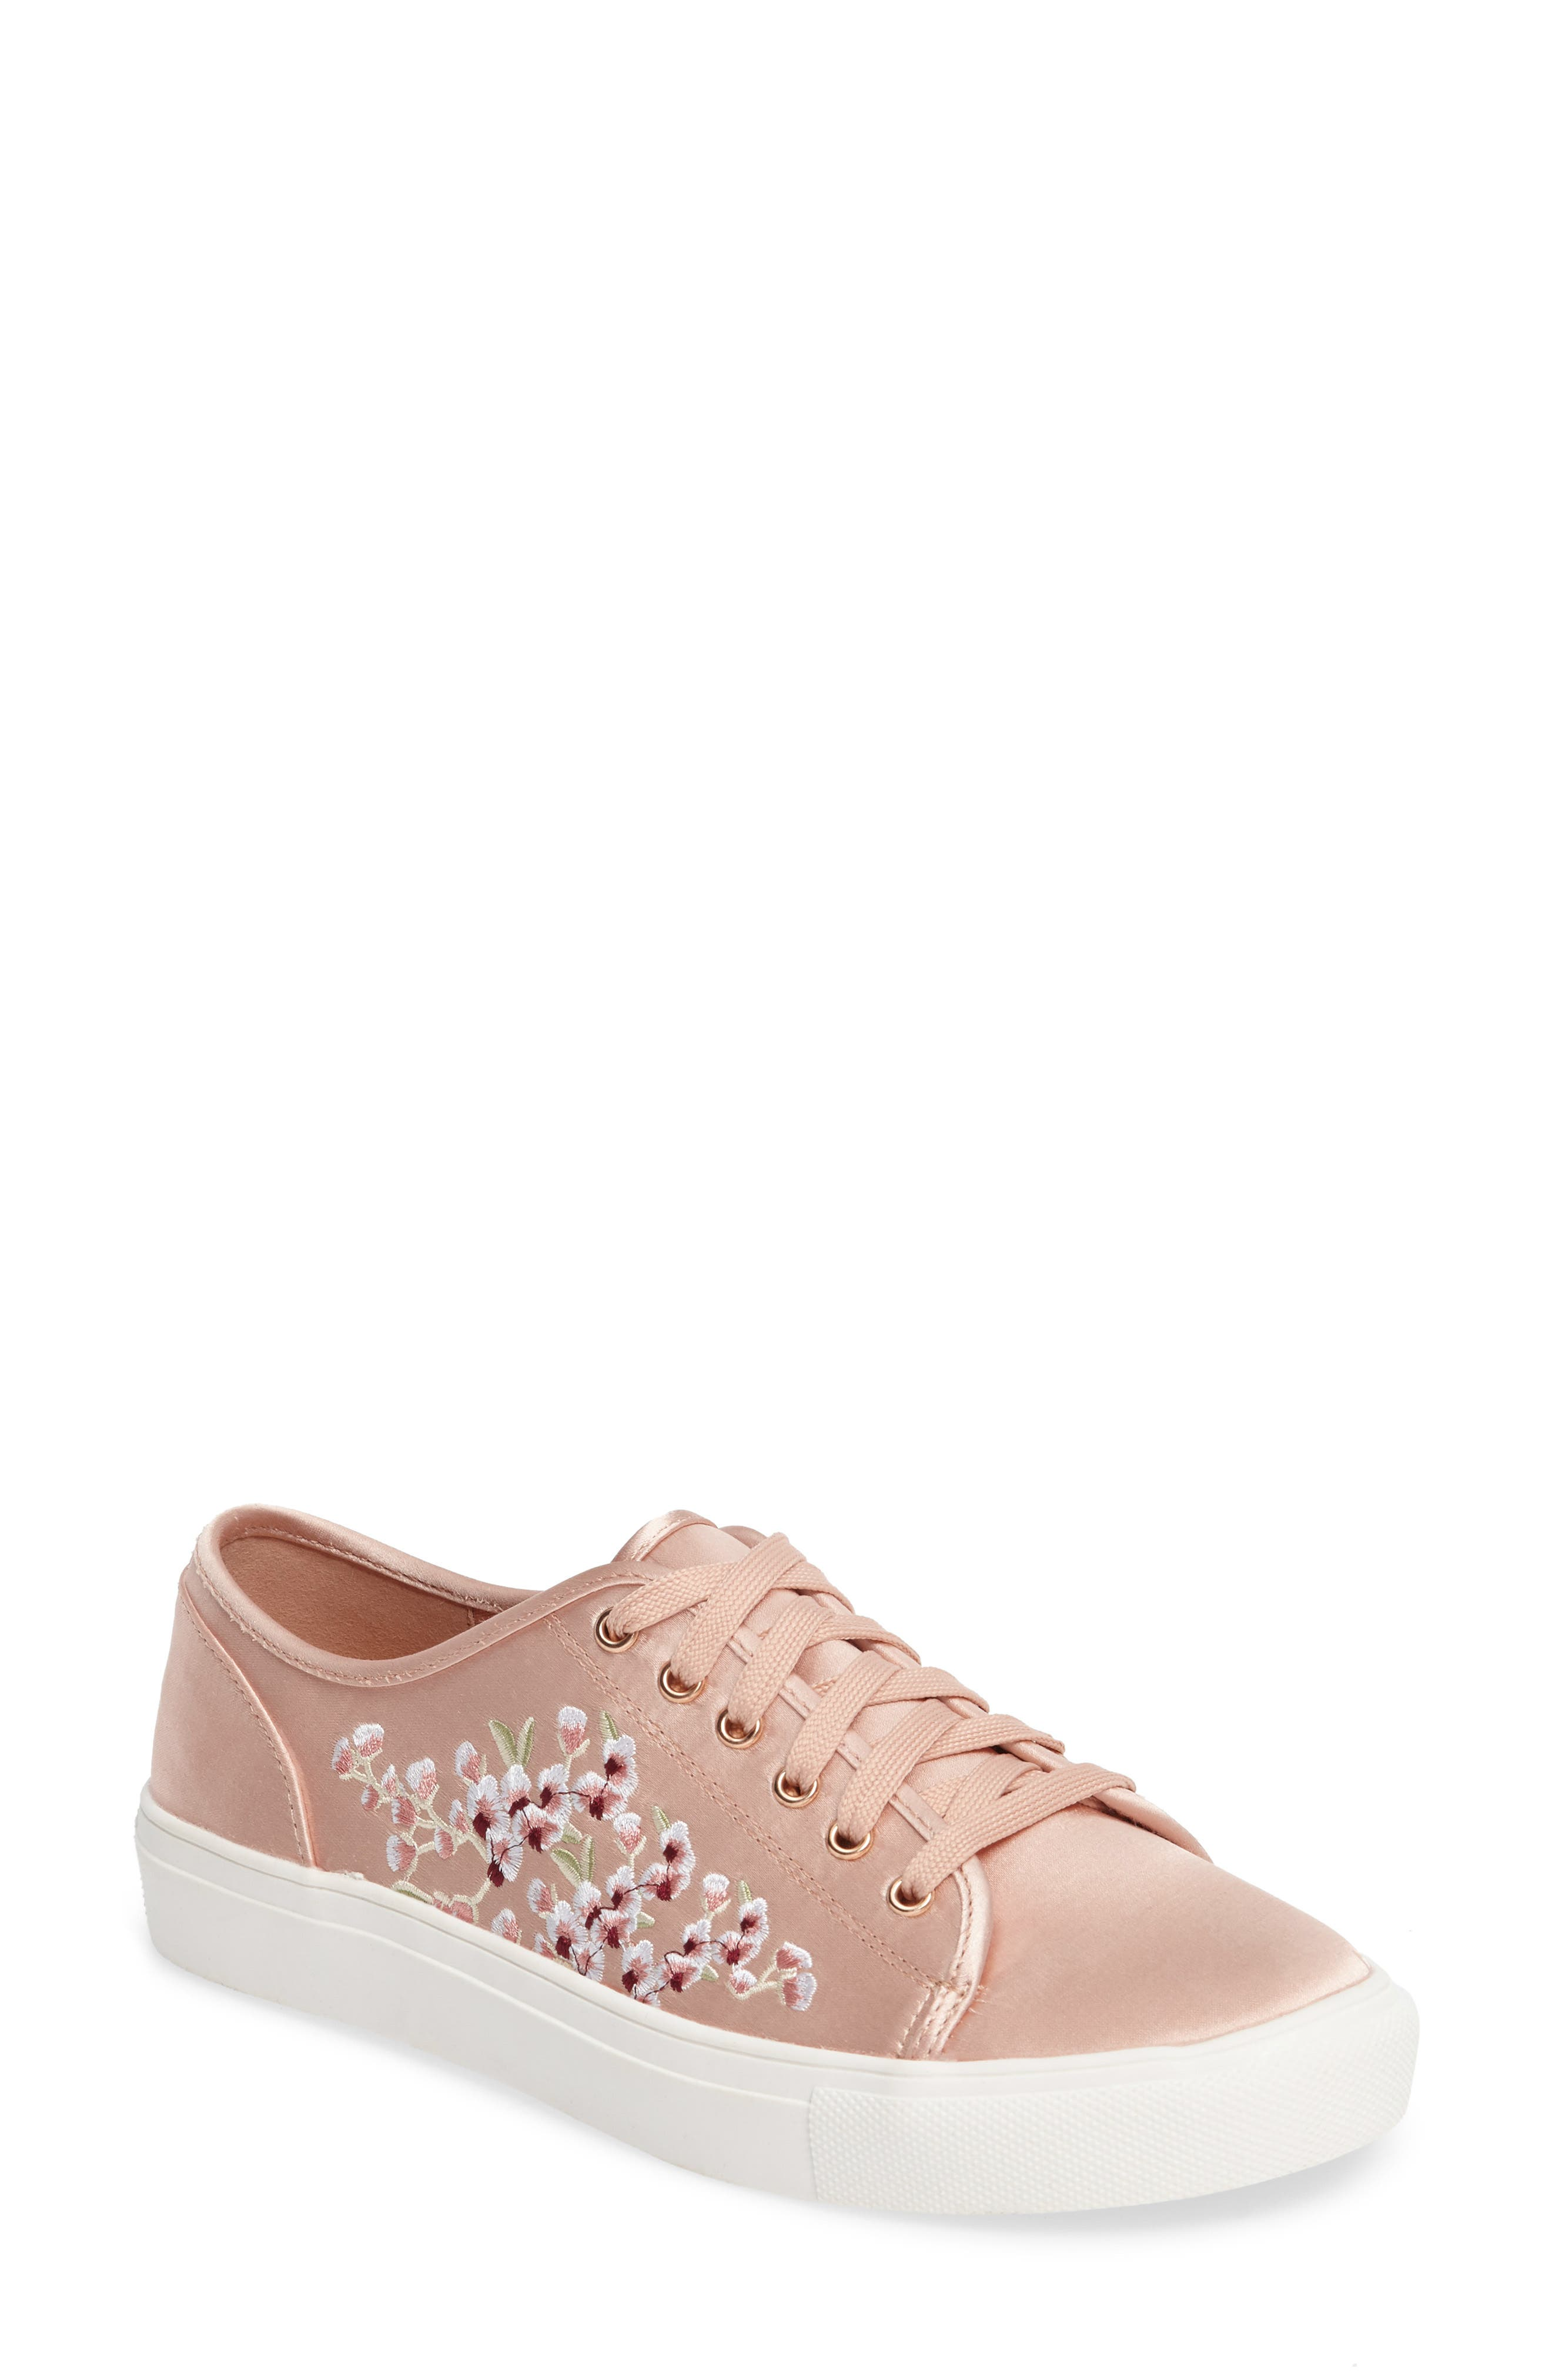 Alternate Image 1 Selected - Topshop Cupid Embroidered Sneaker (Women)